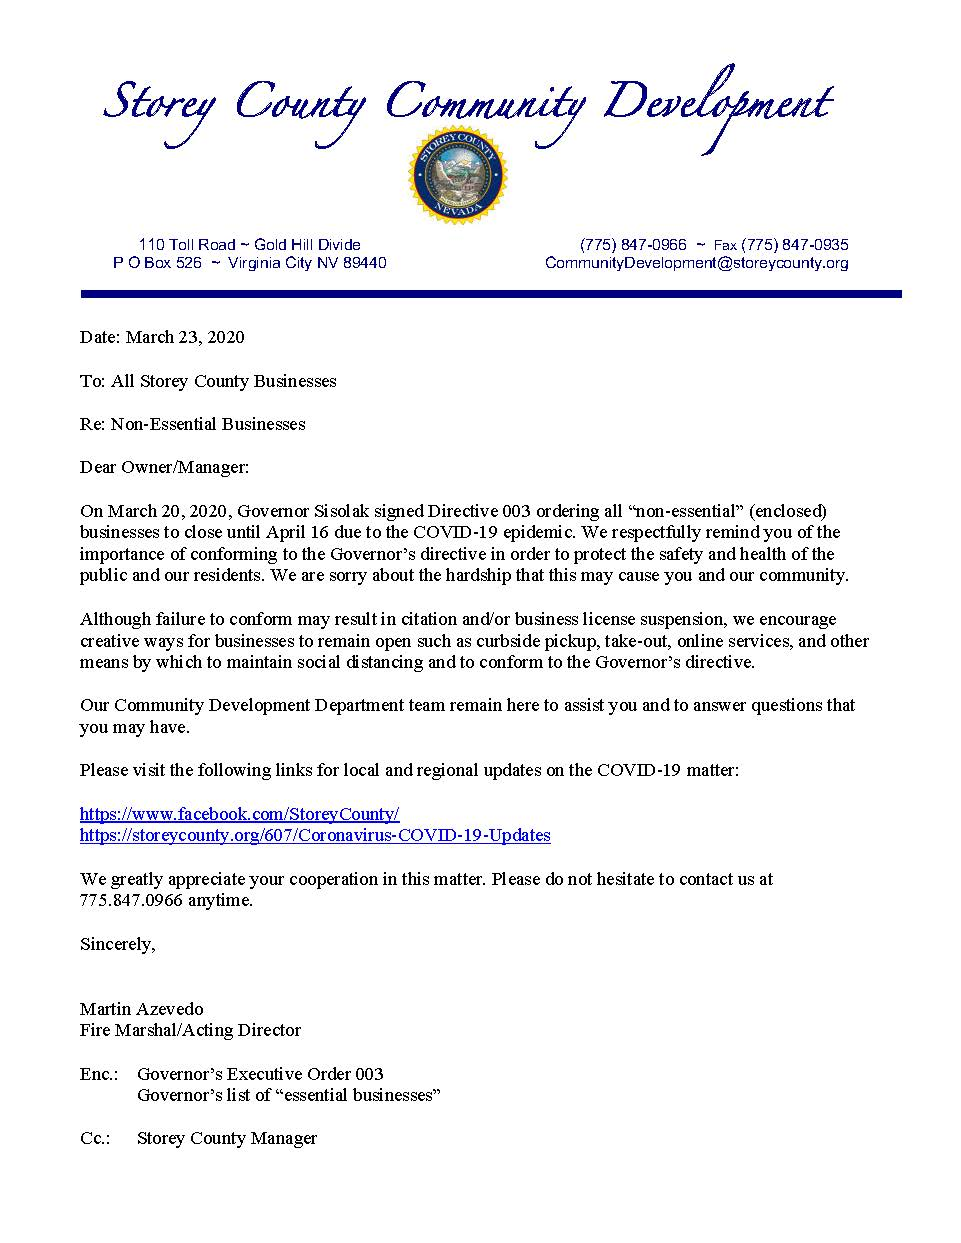 SC Community Development Letter to County Businesses 3-24-20